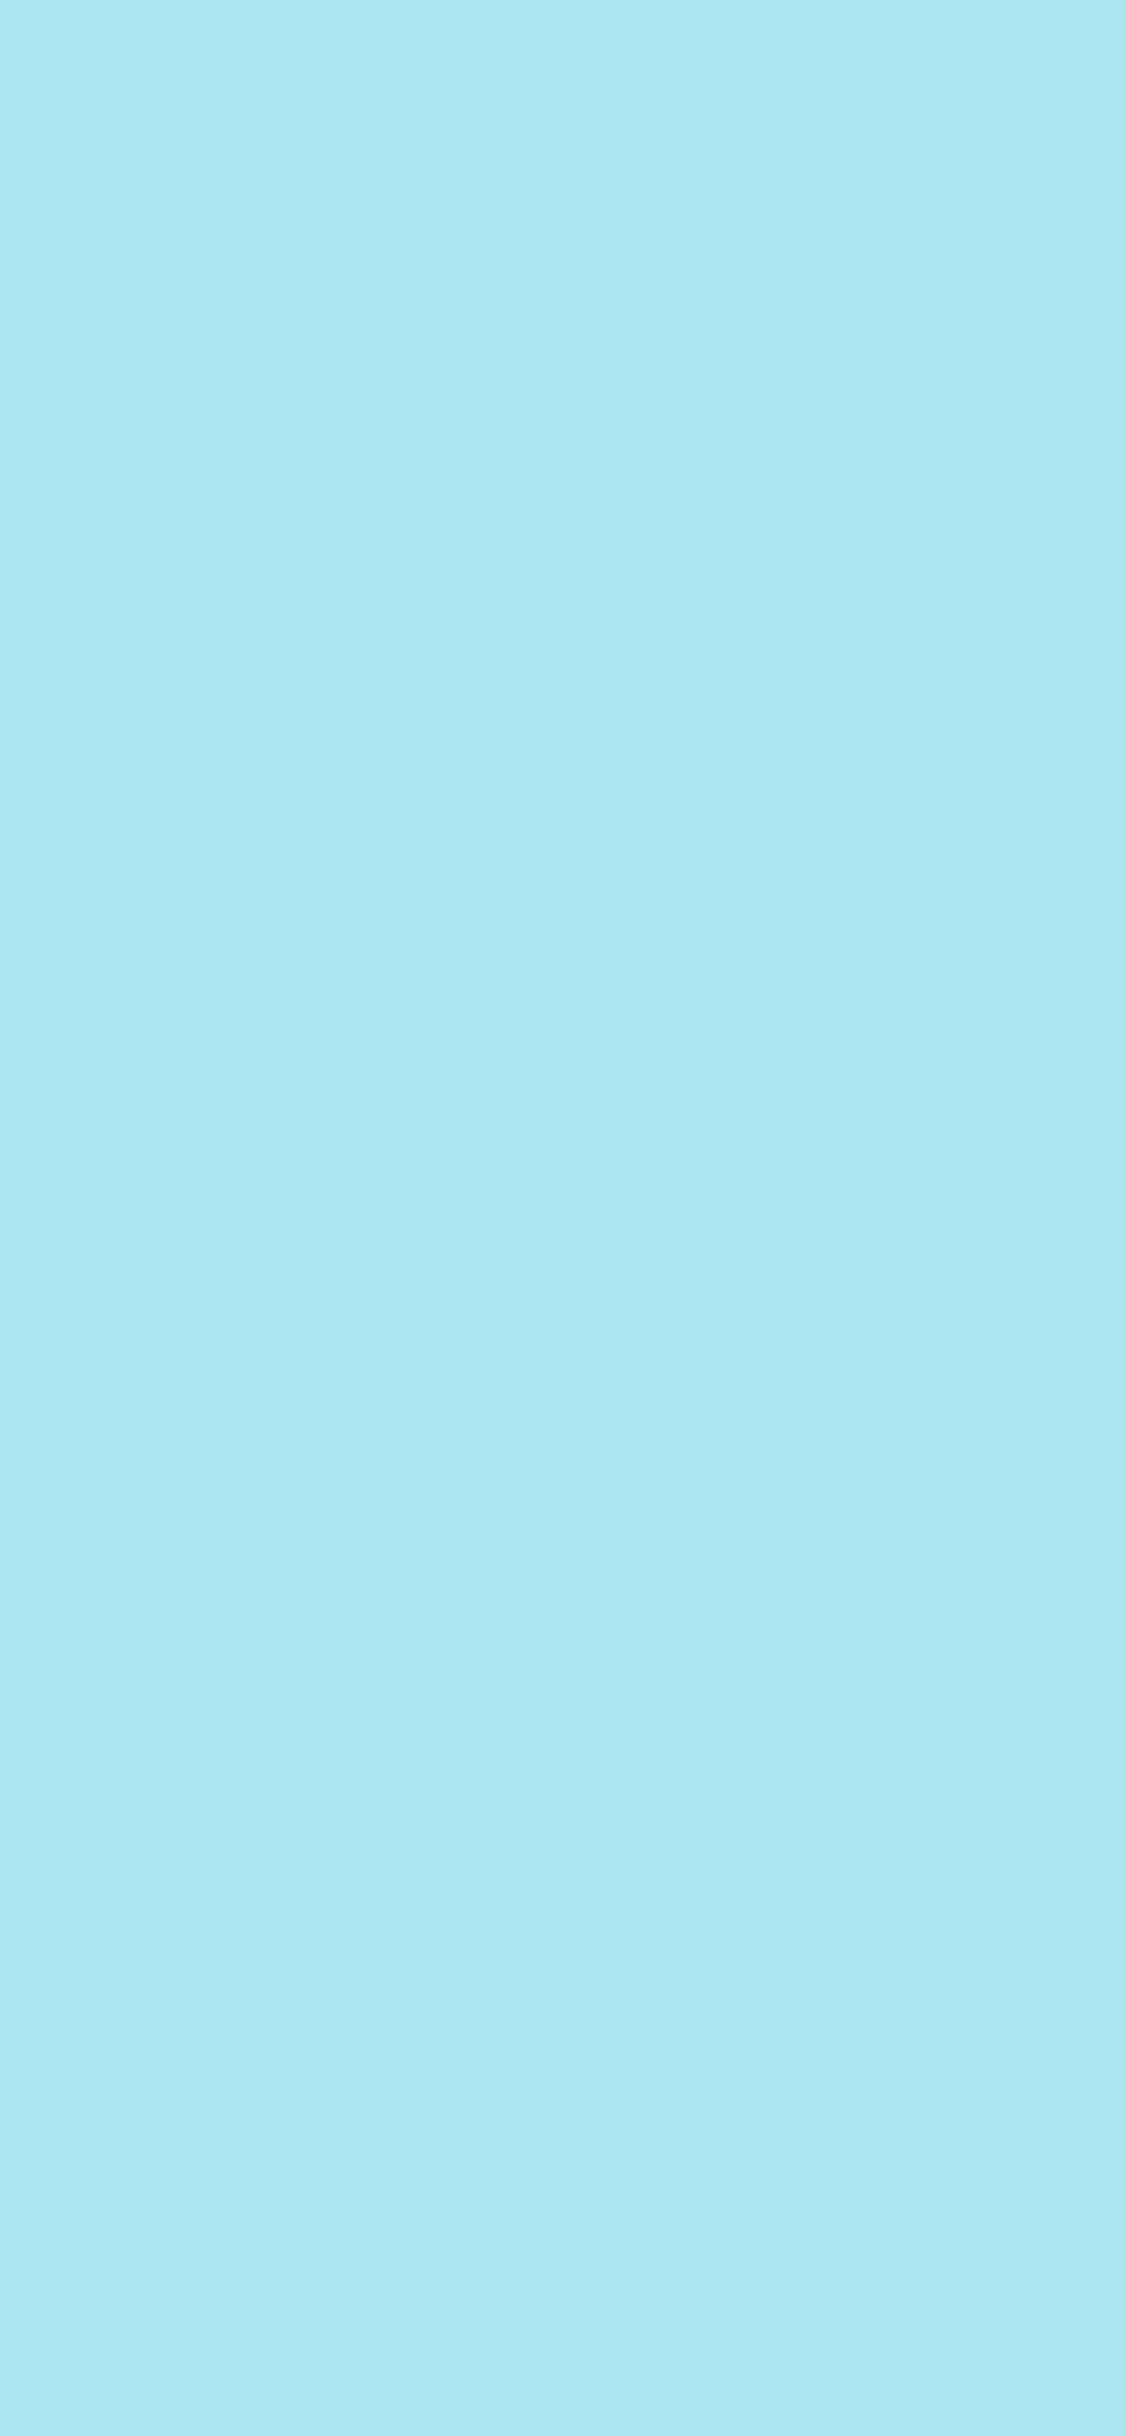 1125x2436 Blizzard Blue Solid Color Background